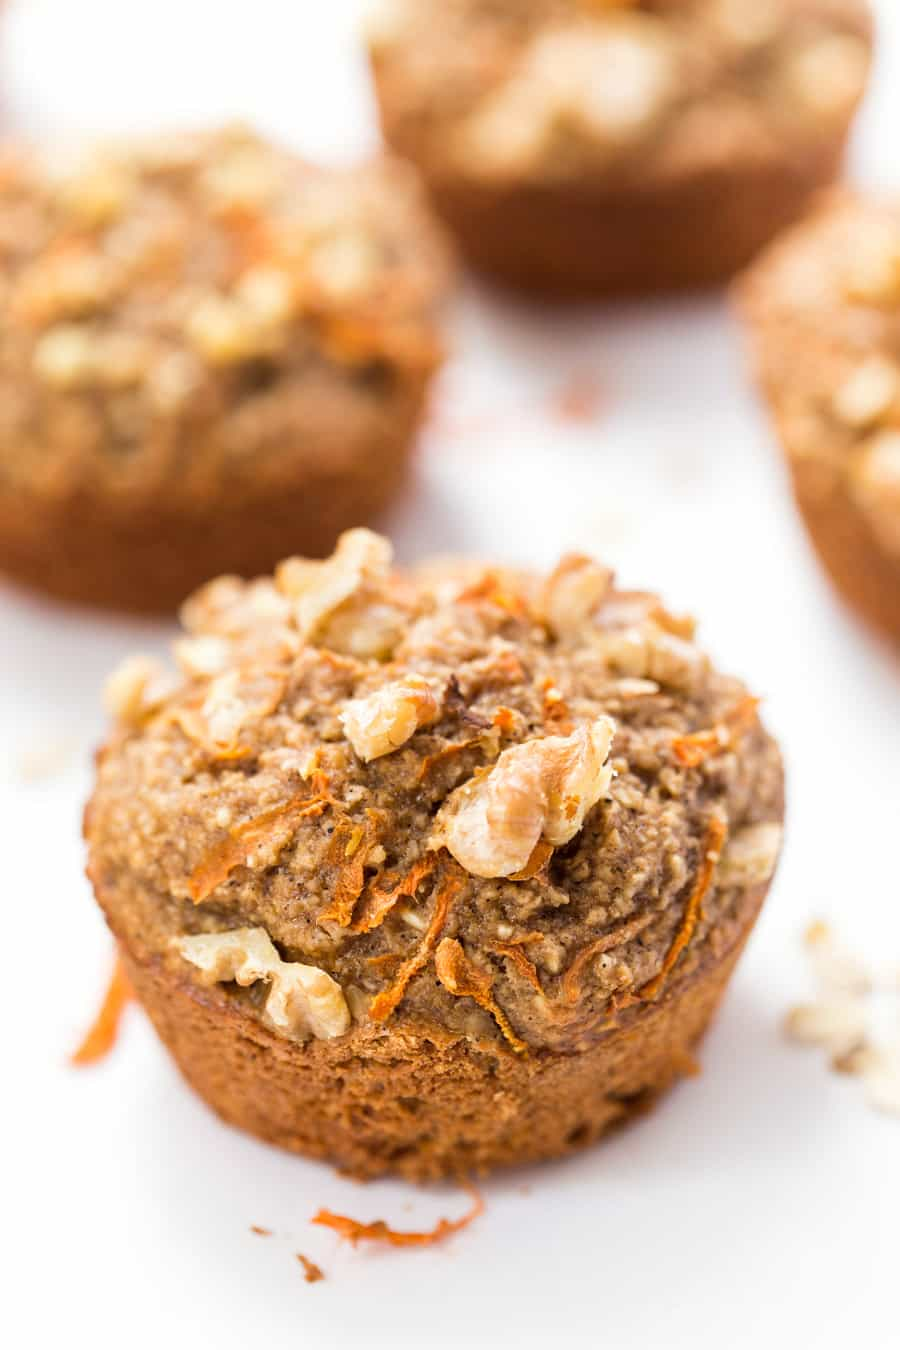 These HEALTHY Carrot Cake Blender Muffins are a great way to sneak in some extra fruit to your breakfast! [naturally GF too]